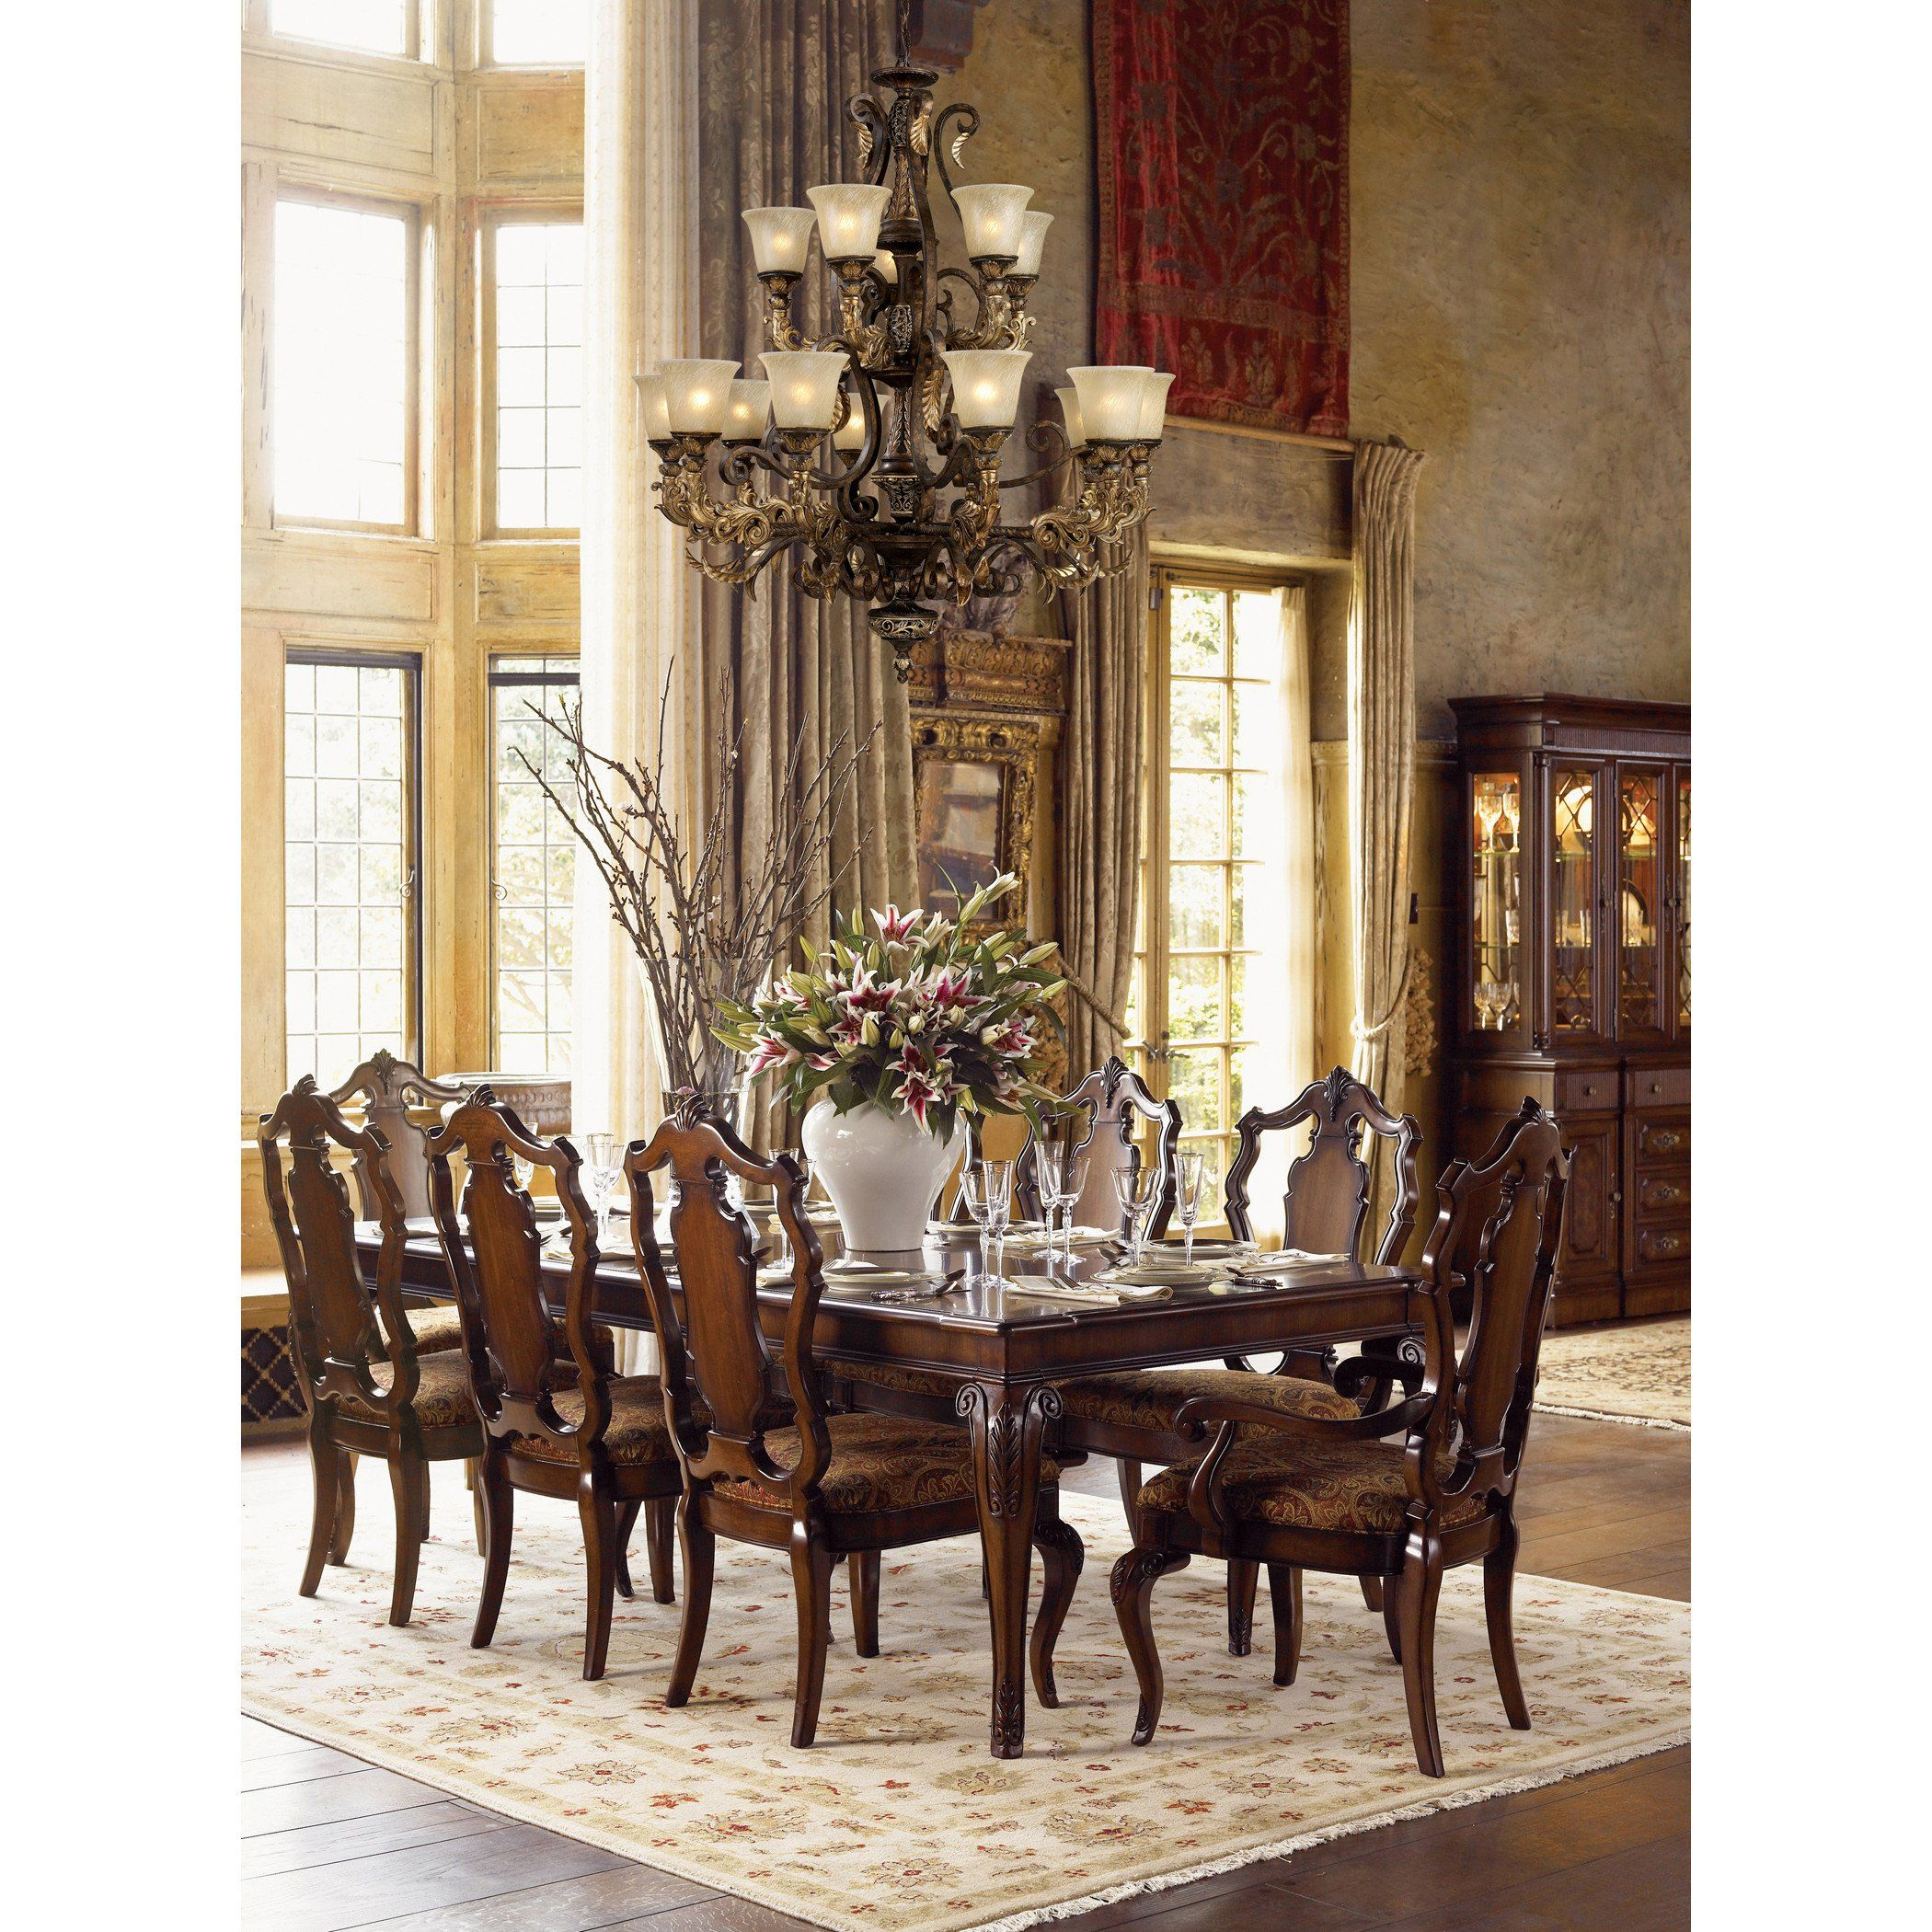 32 Stylish Dining Room Ideas To Impress Your Dinner Guests: Regency Creates A Rich And Regal Ambiance. The Solid Cast